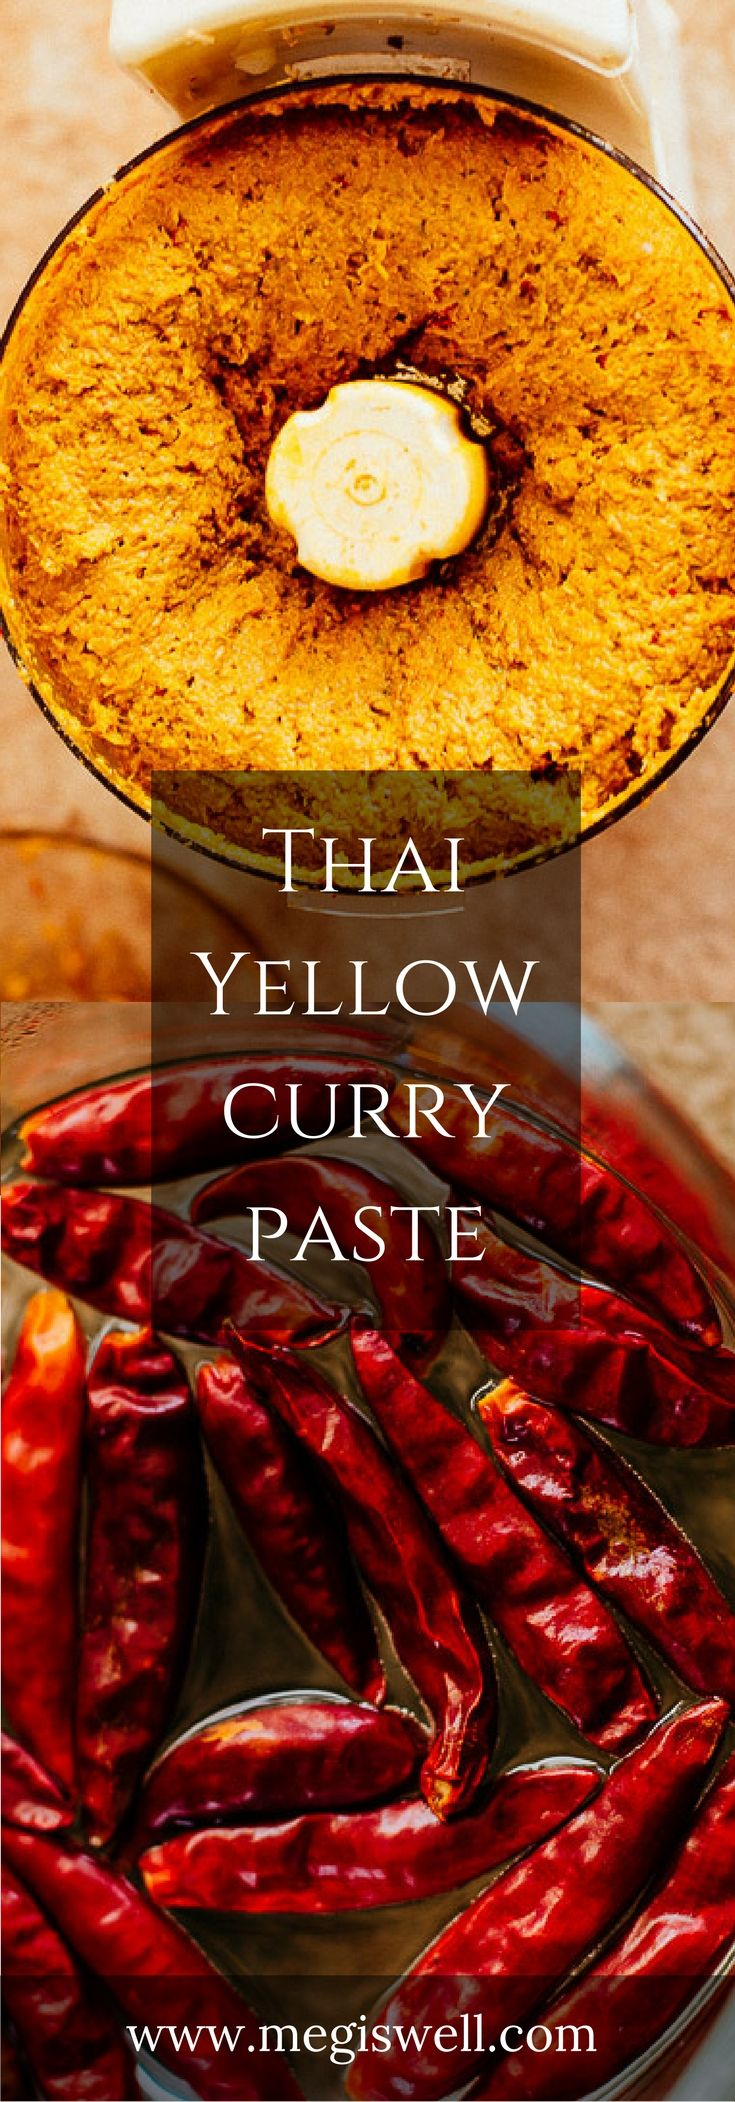 Although making your own Thai Yellow Curry Paste from scratch seems intimidating, this recipe breaks it down into manageable steps. You'll never have to buy store bought curry paste again and the effort is well worth the rewards.   www.megiswell.com